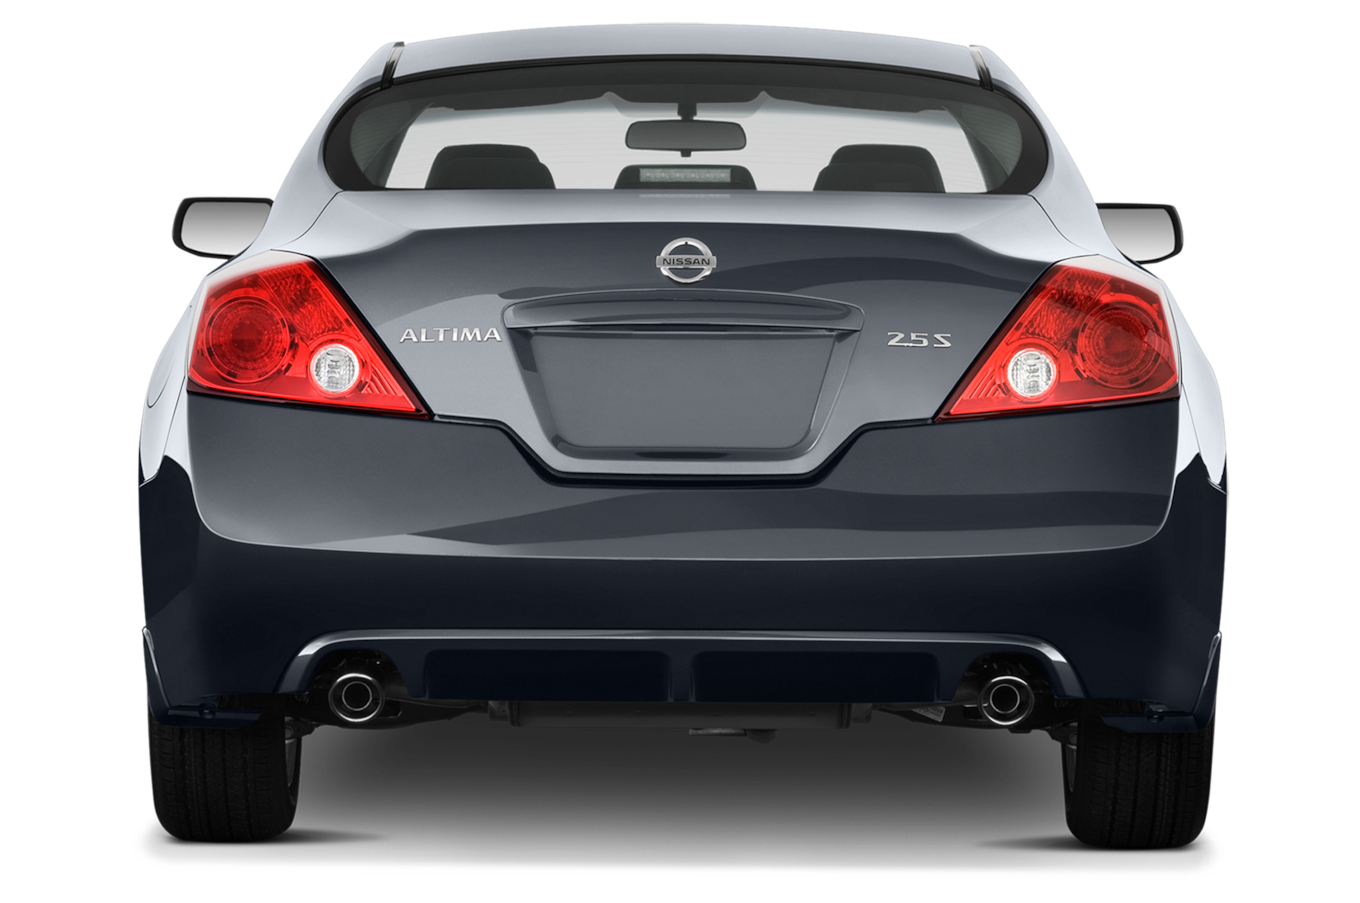 12 New Nissan Altima 2 5 S Research New by Nissan Altima 2 5 S